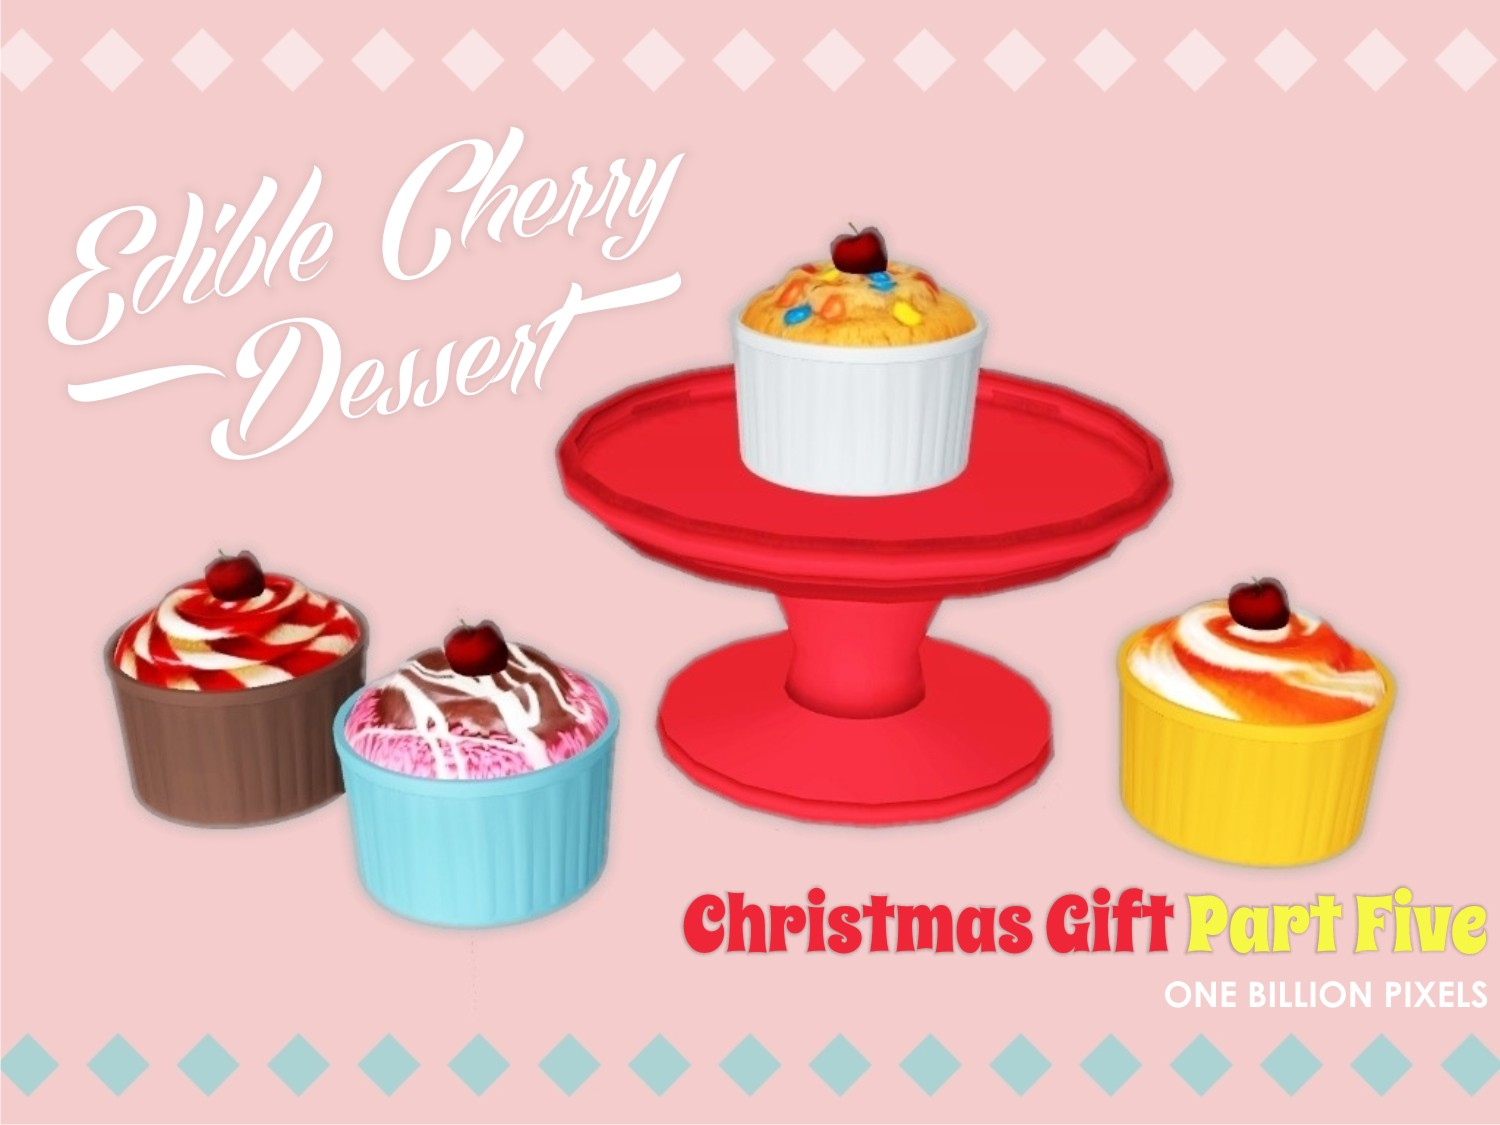 Christmas Gift Part 5 (Edible Cherry Dessert) by NewOne